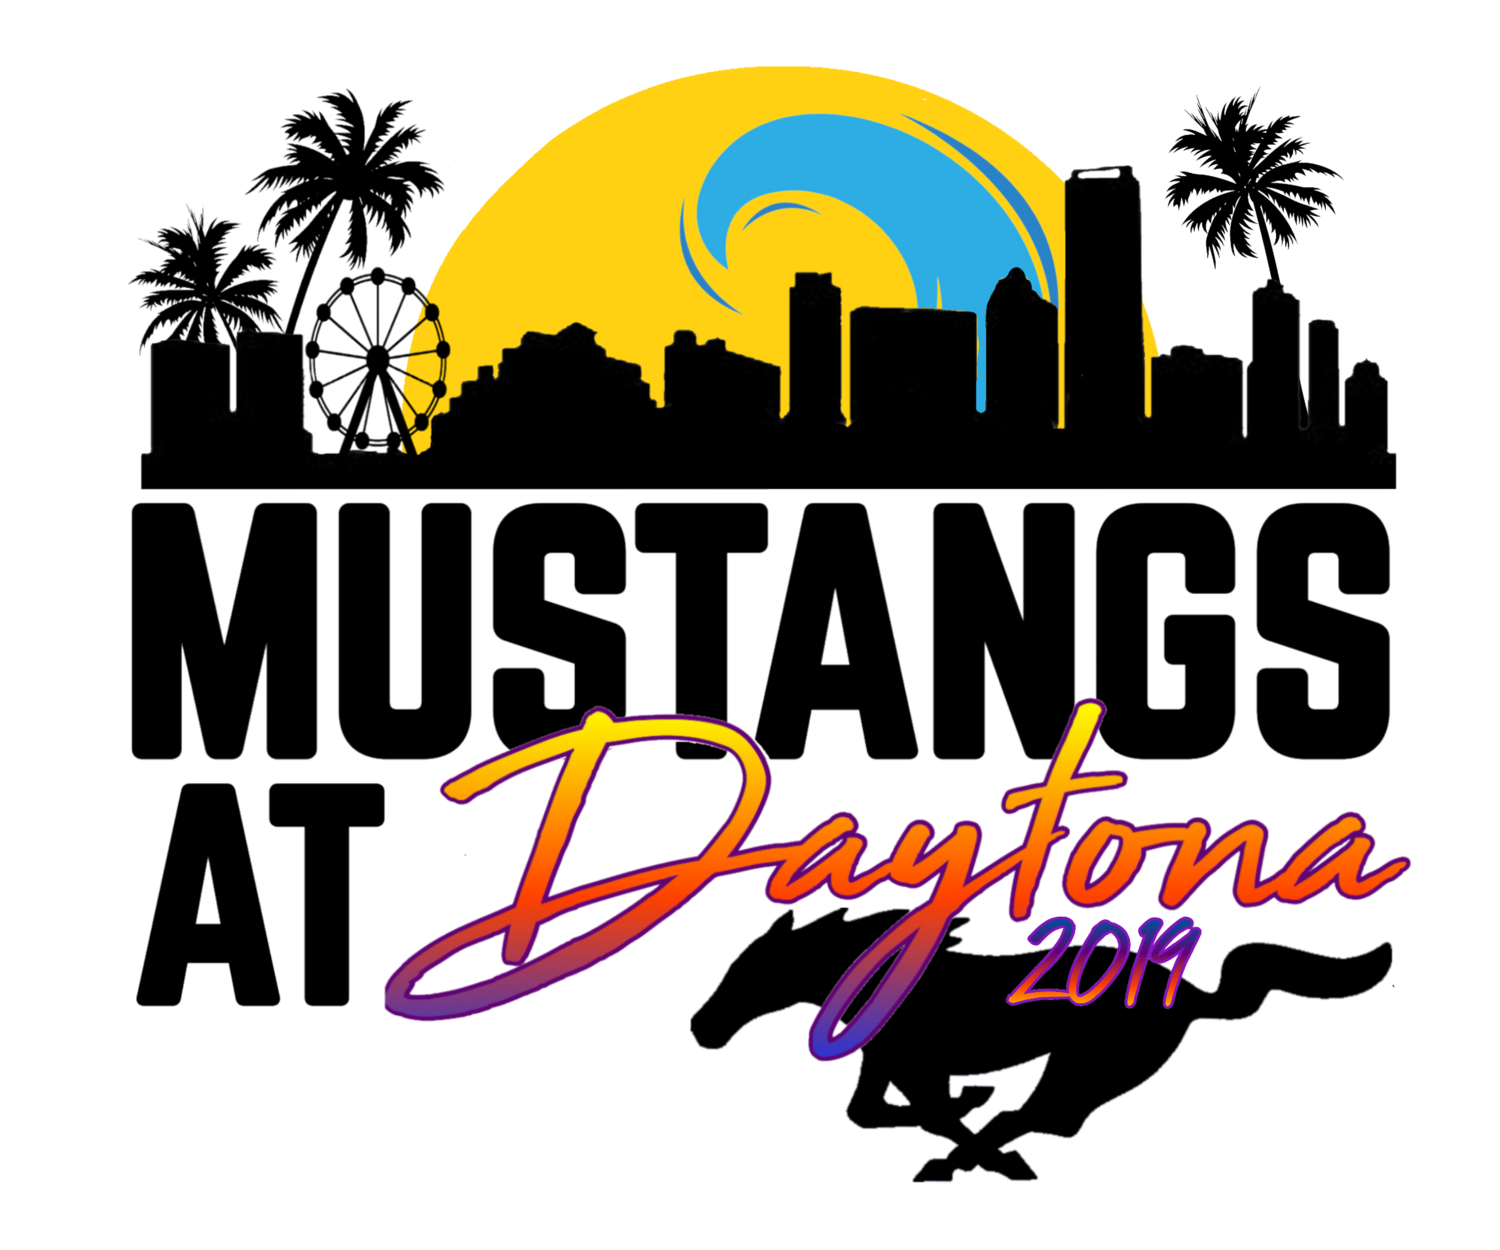 MUSTANGS AT DAYTONA